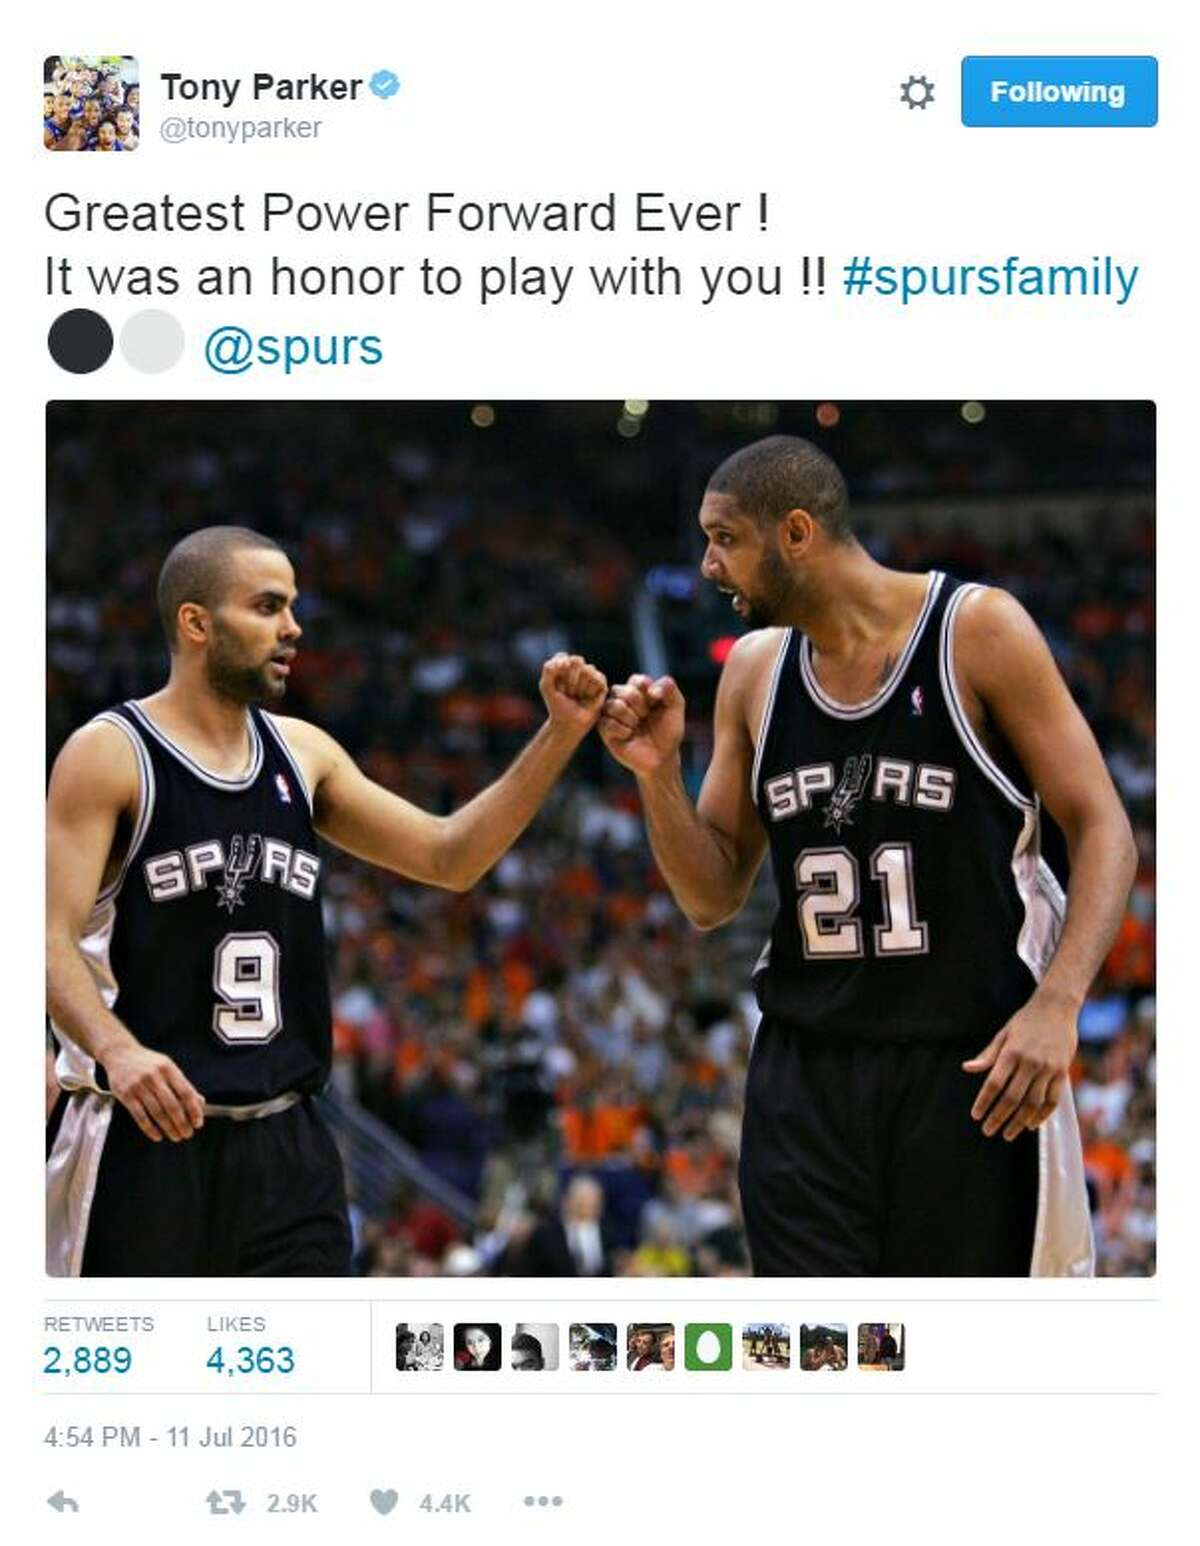 @tonyparker: Greatest Power Forward Ever ! It was an honor to play with you !! #spursfamily @spurs